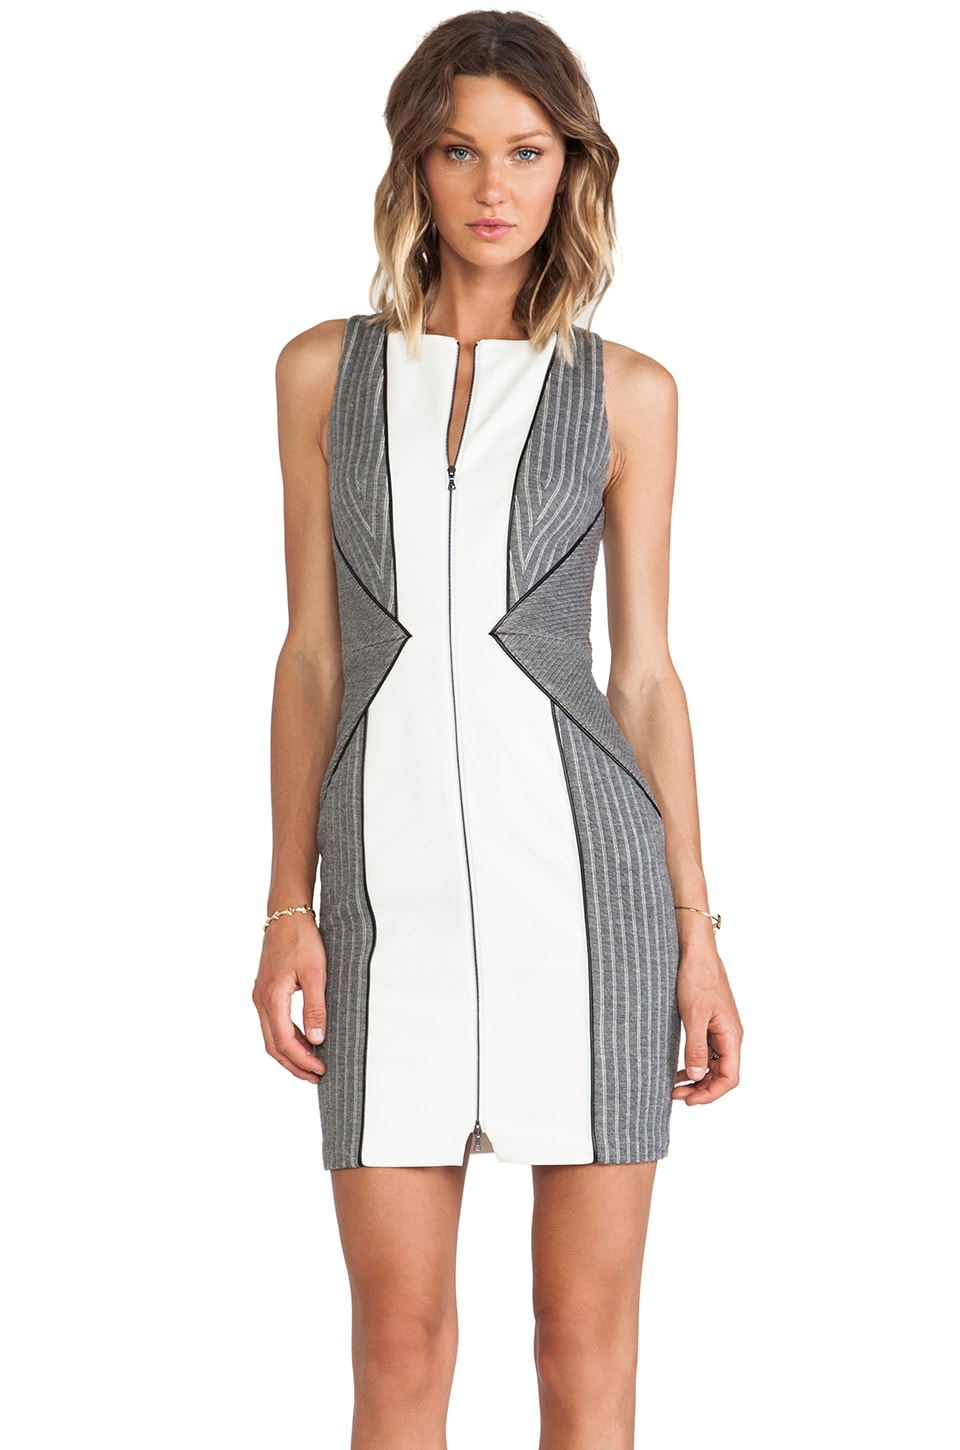 Sachin & Babi Alley Dress in Ash Stripe